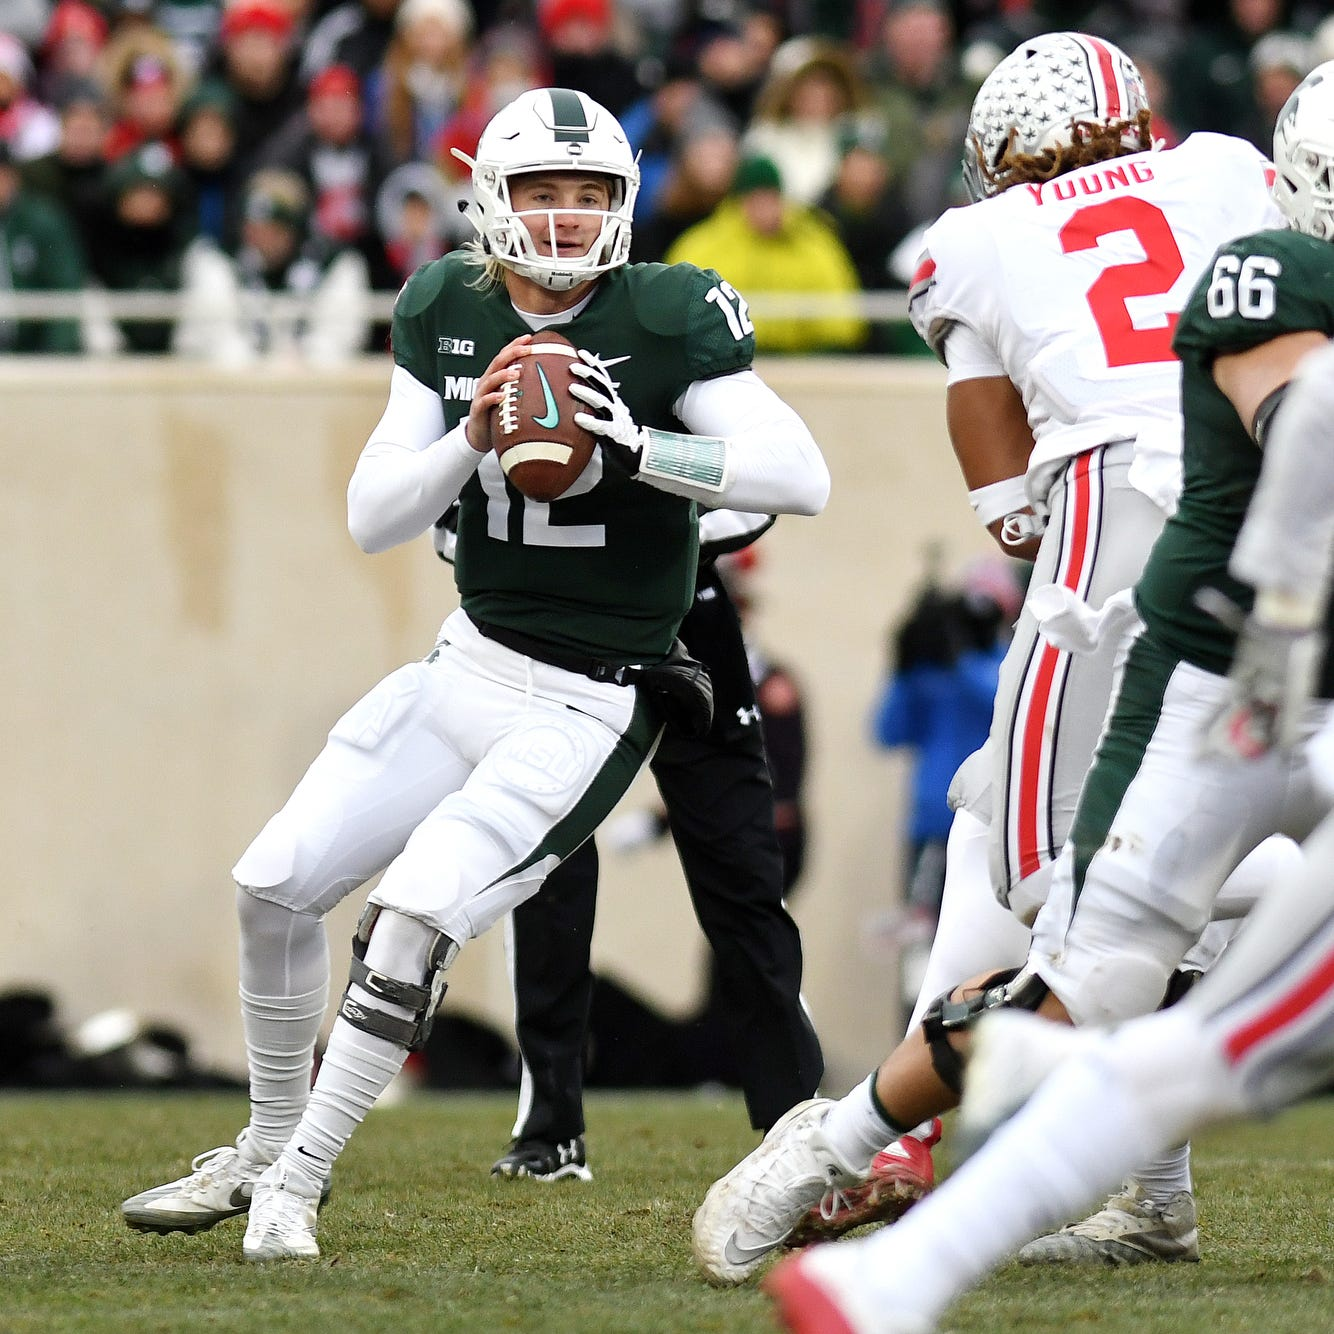 Couch: 3 quick takes on Michigan State's 26-6 loss Ohio State